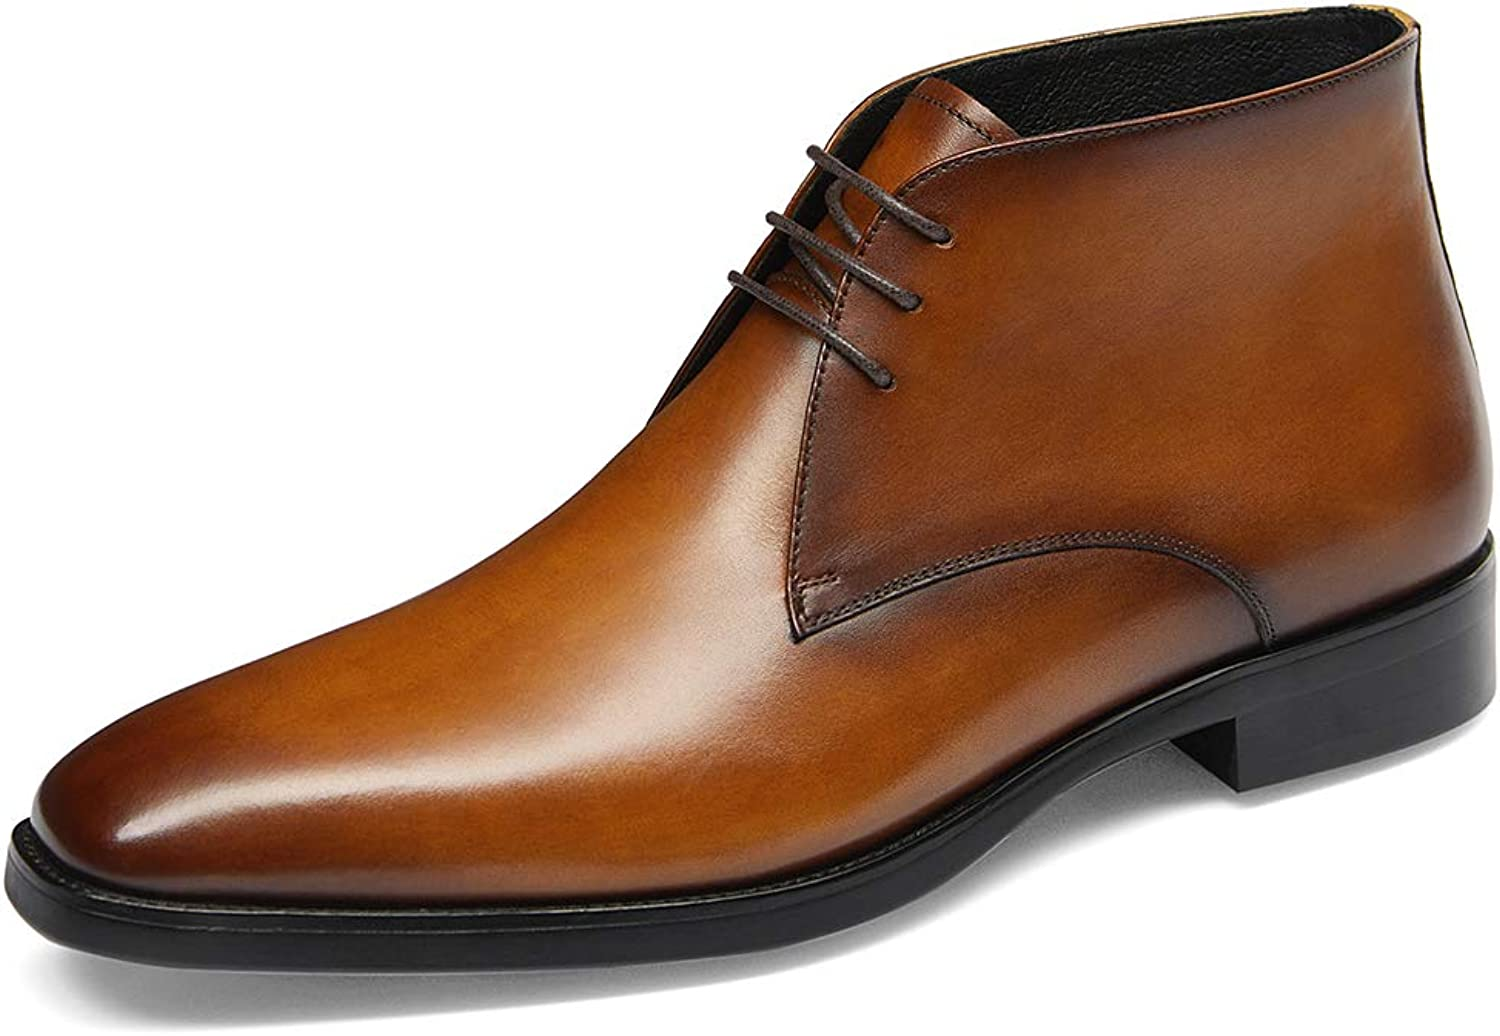 GIFENNSE Men's Chukka Boots,Brown Boots for Men,Black Boots,Men's shoes,Boot Mens Black,Leather Boots